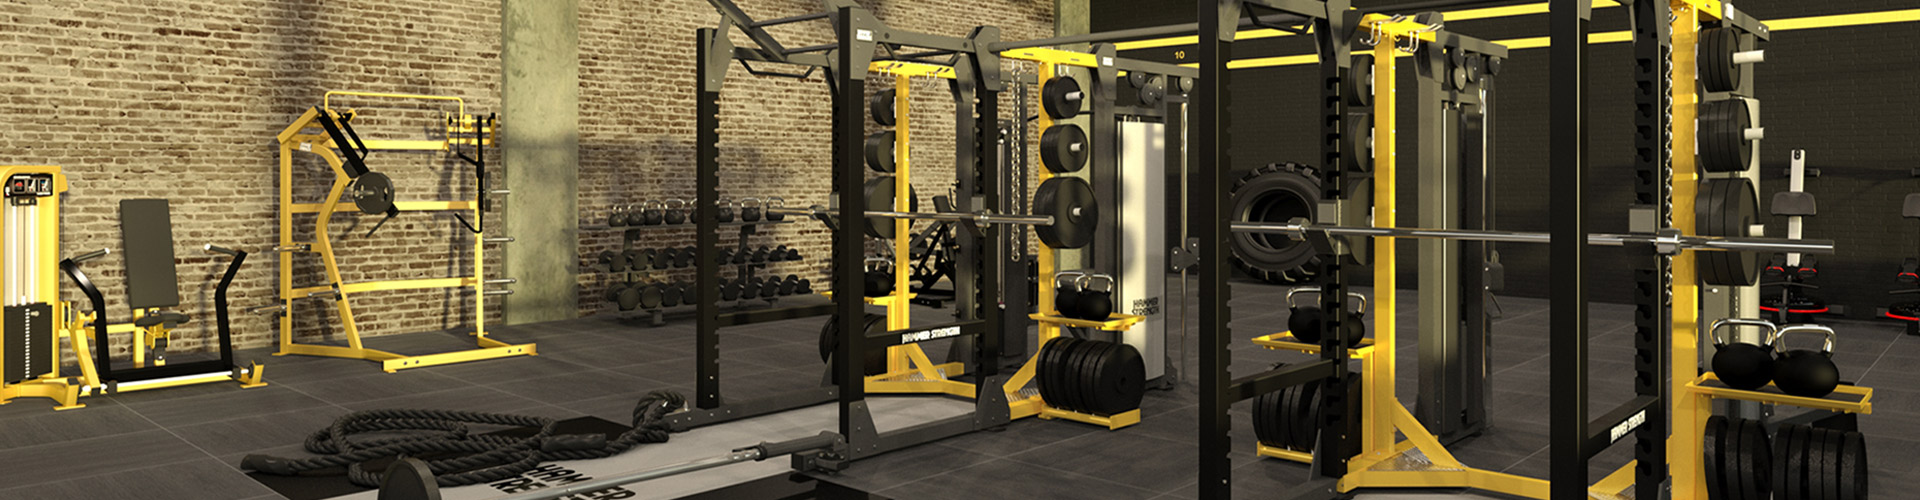 Gym Feat Hammer Strength Ground Base Hd Elite Racks H1